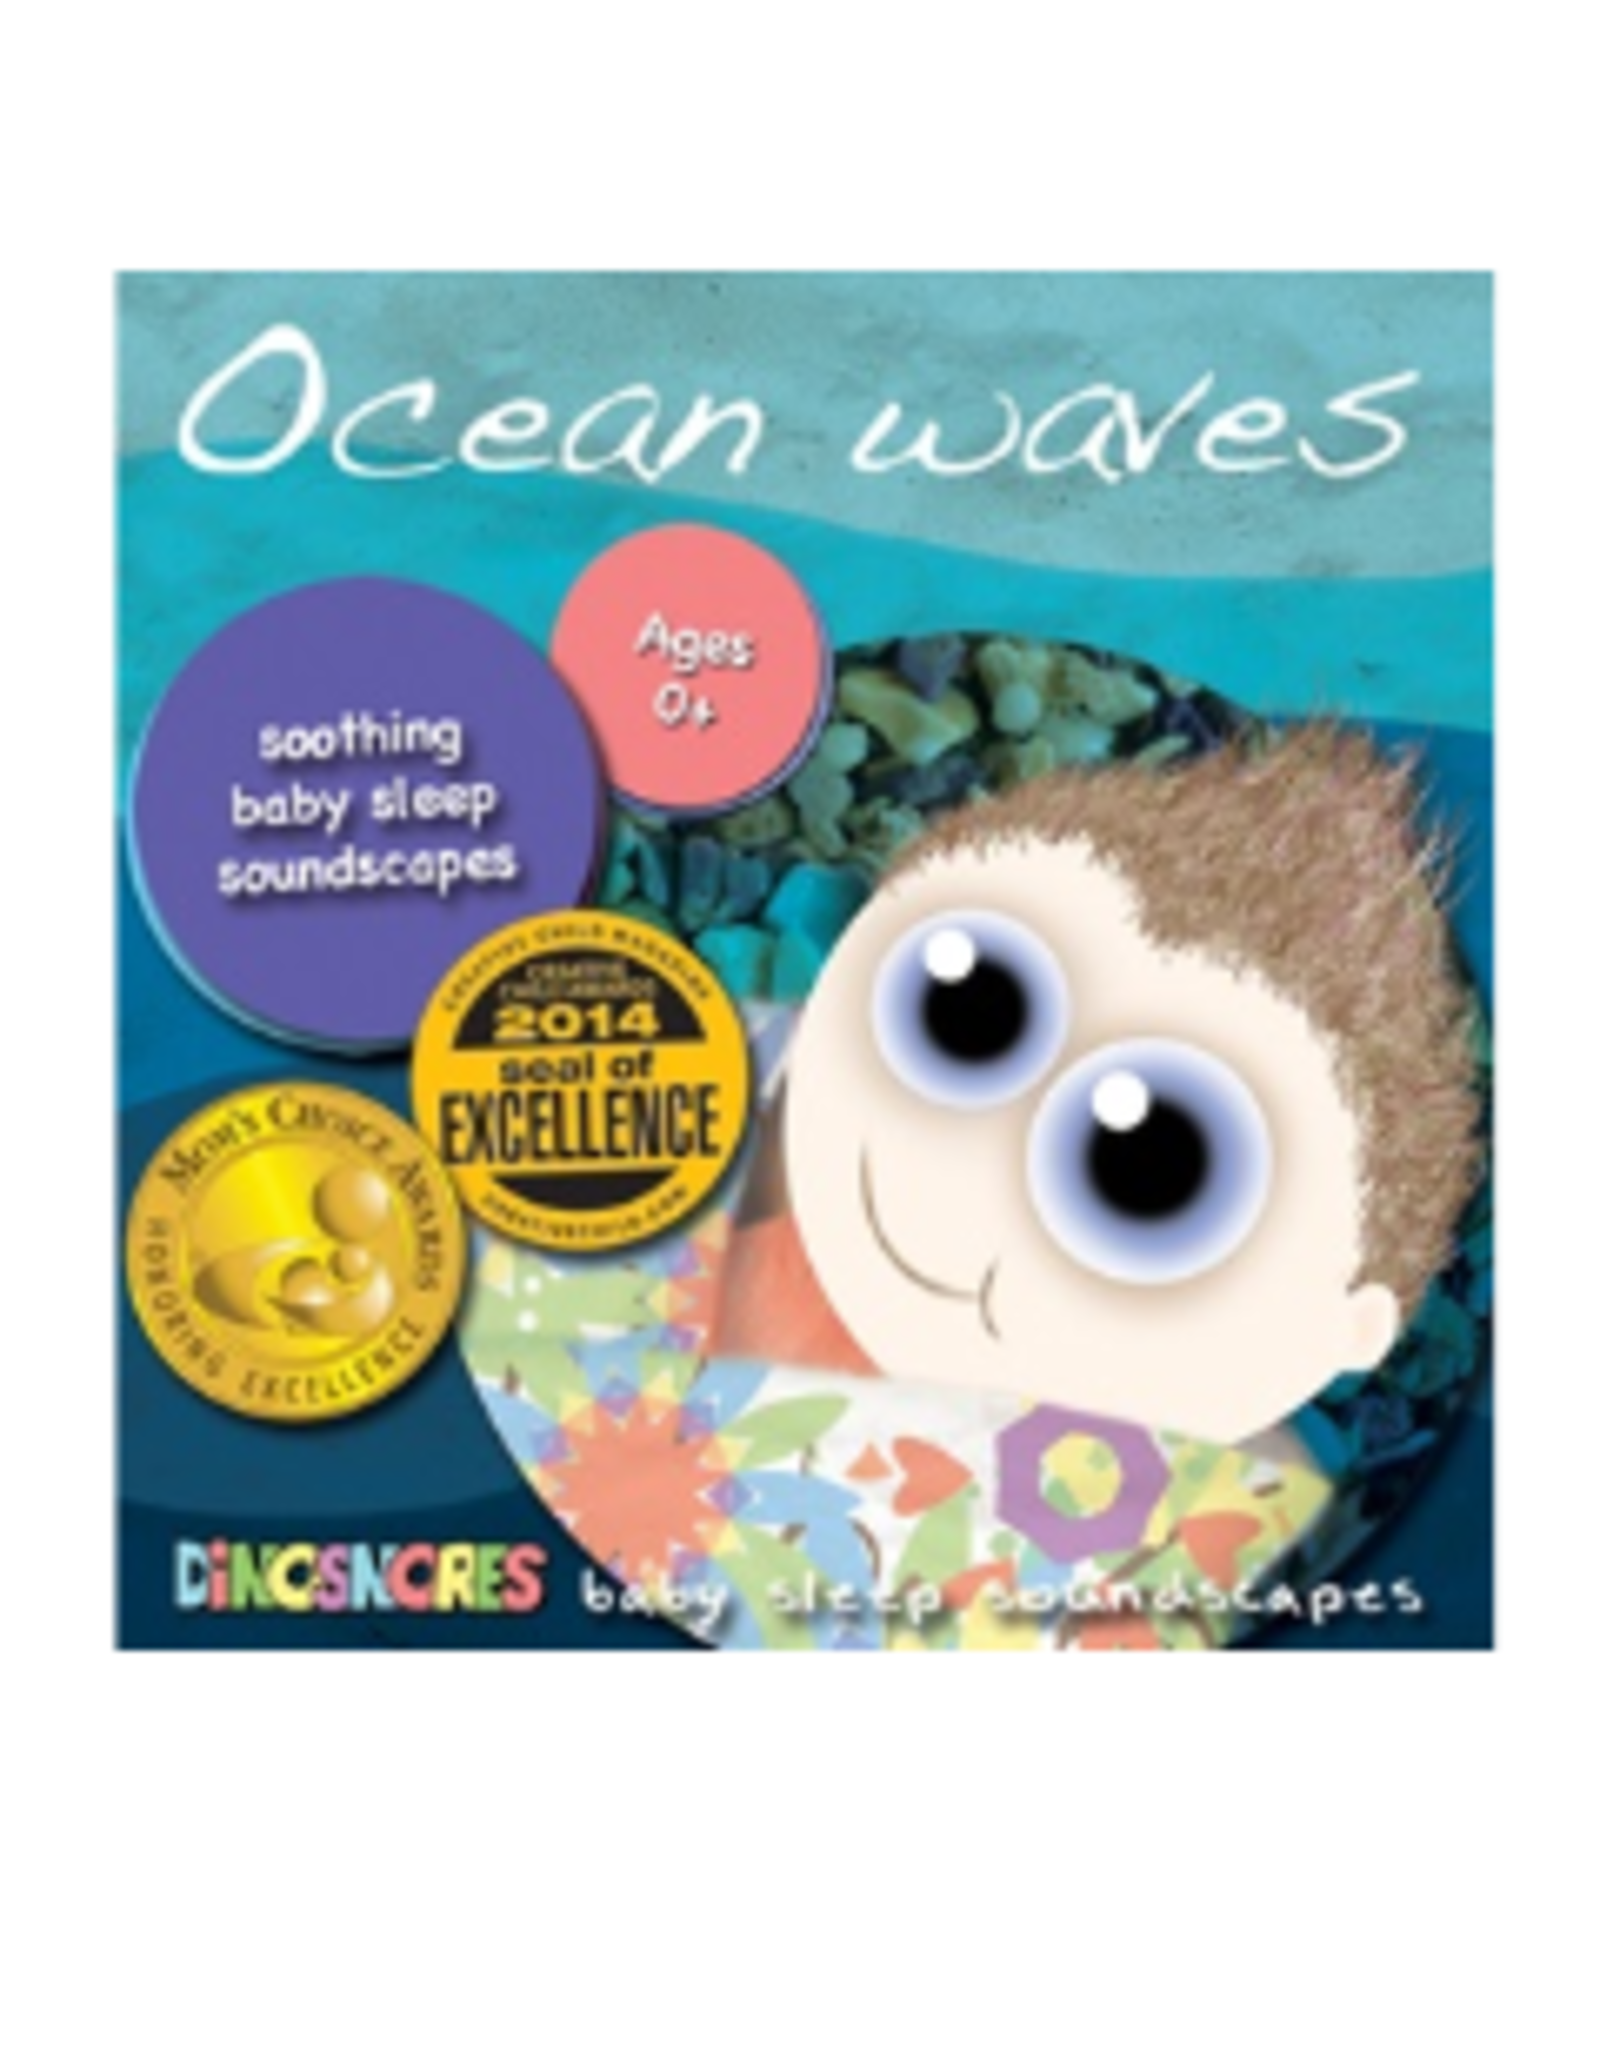 Dinosnores Ocean Waves CD